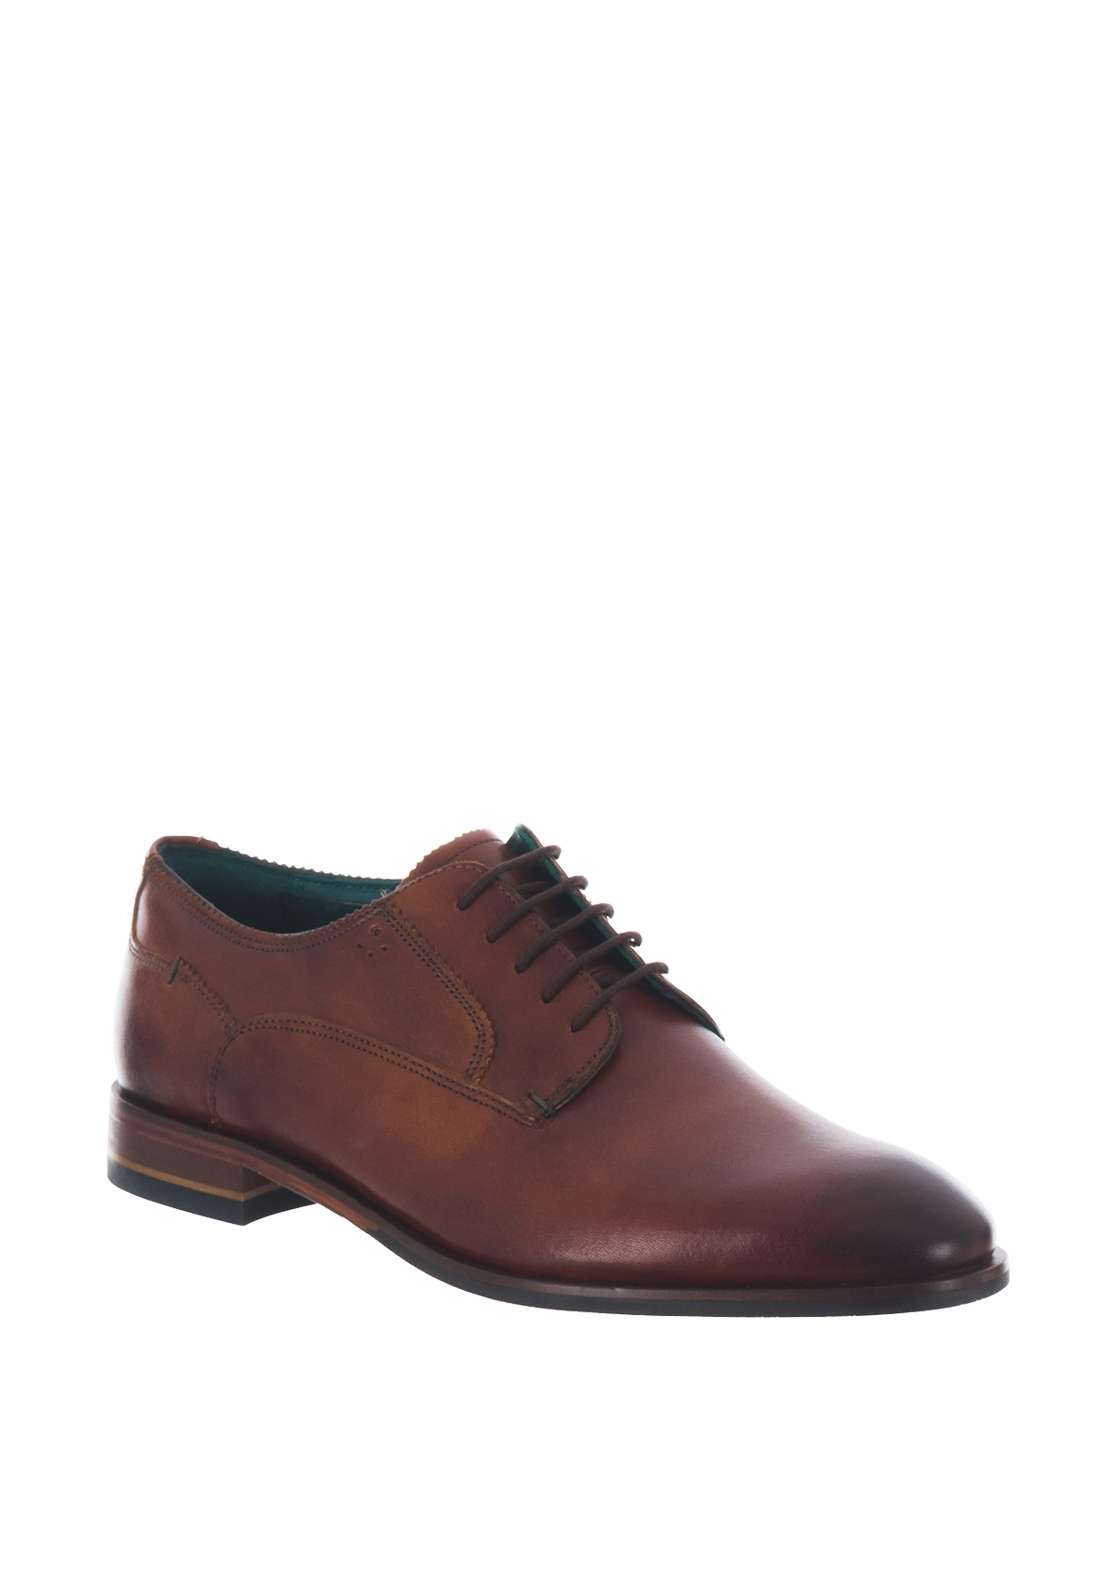 Ted Baker Parals Leather Derby Shoe, Tan